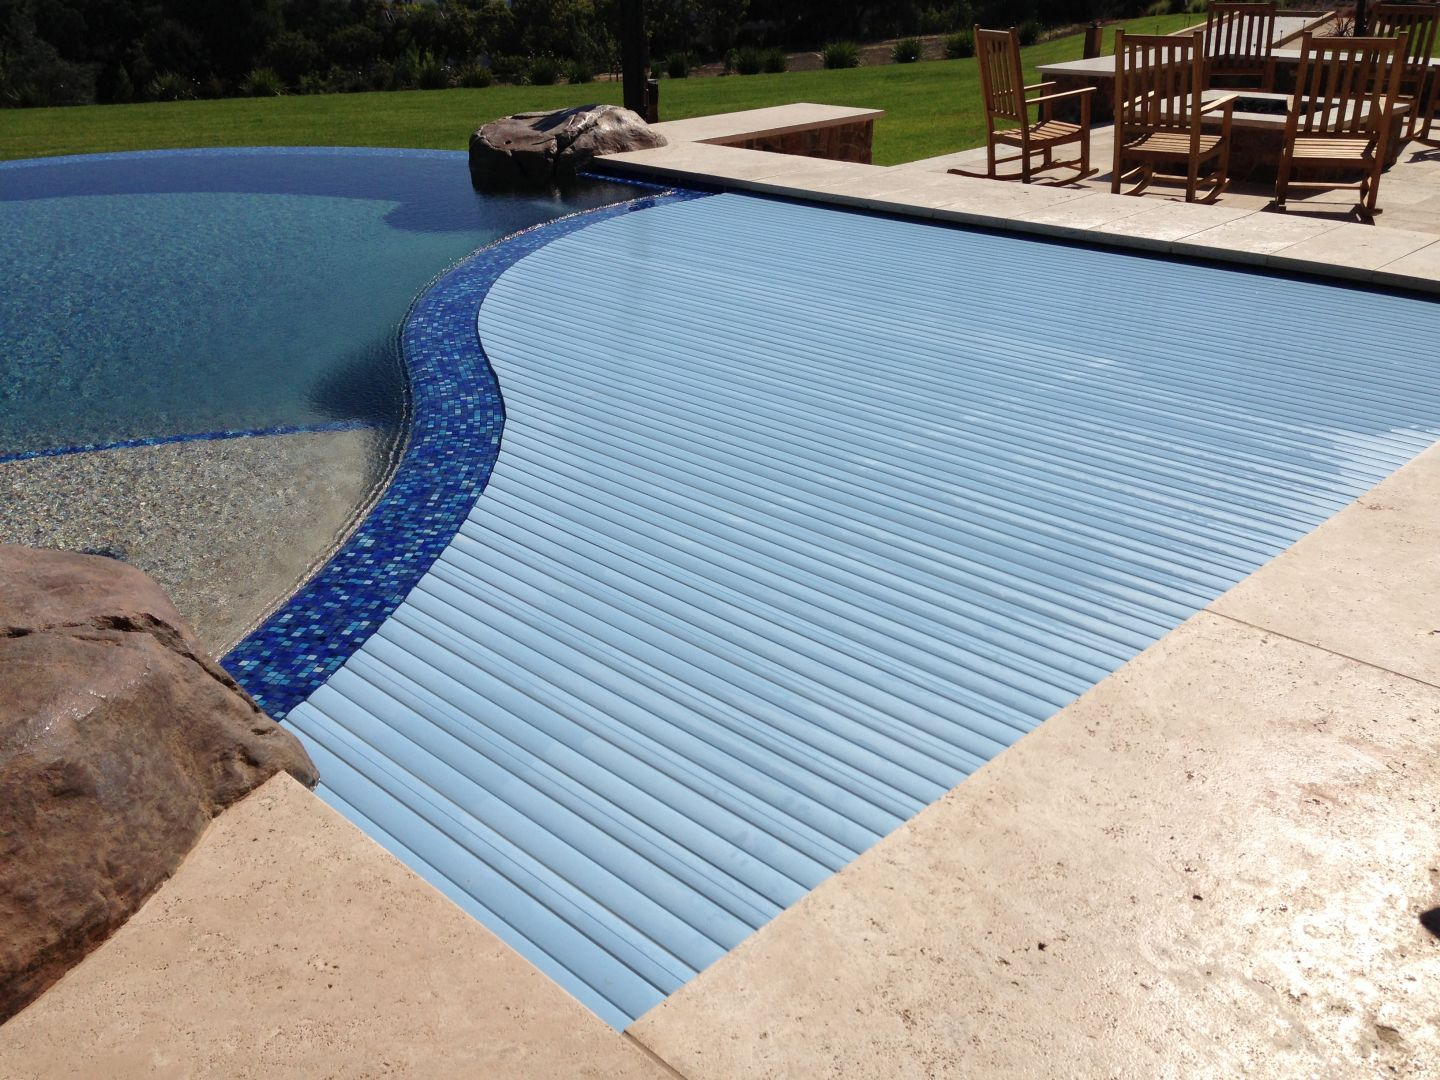 The Covrex Classic Pool Cover Covrex Pool Protection